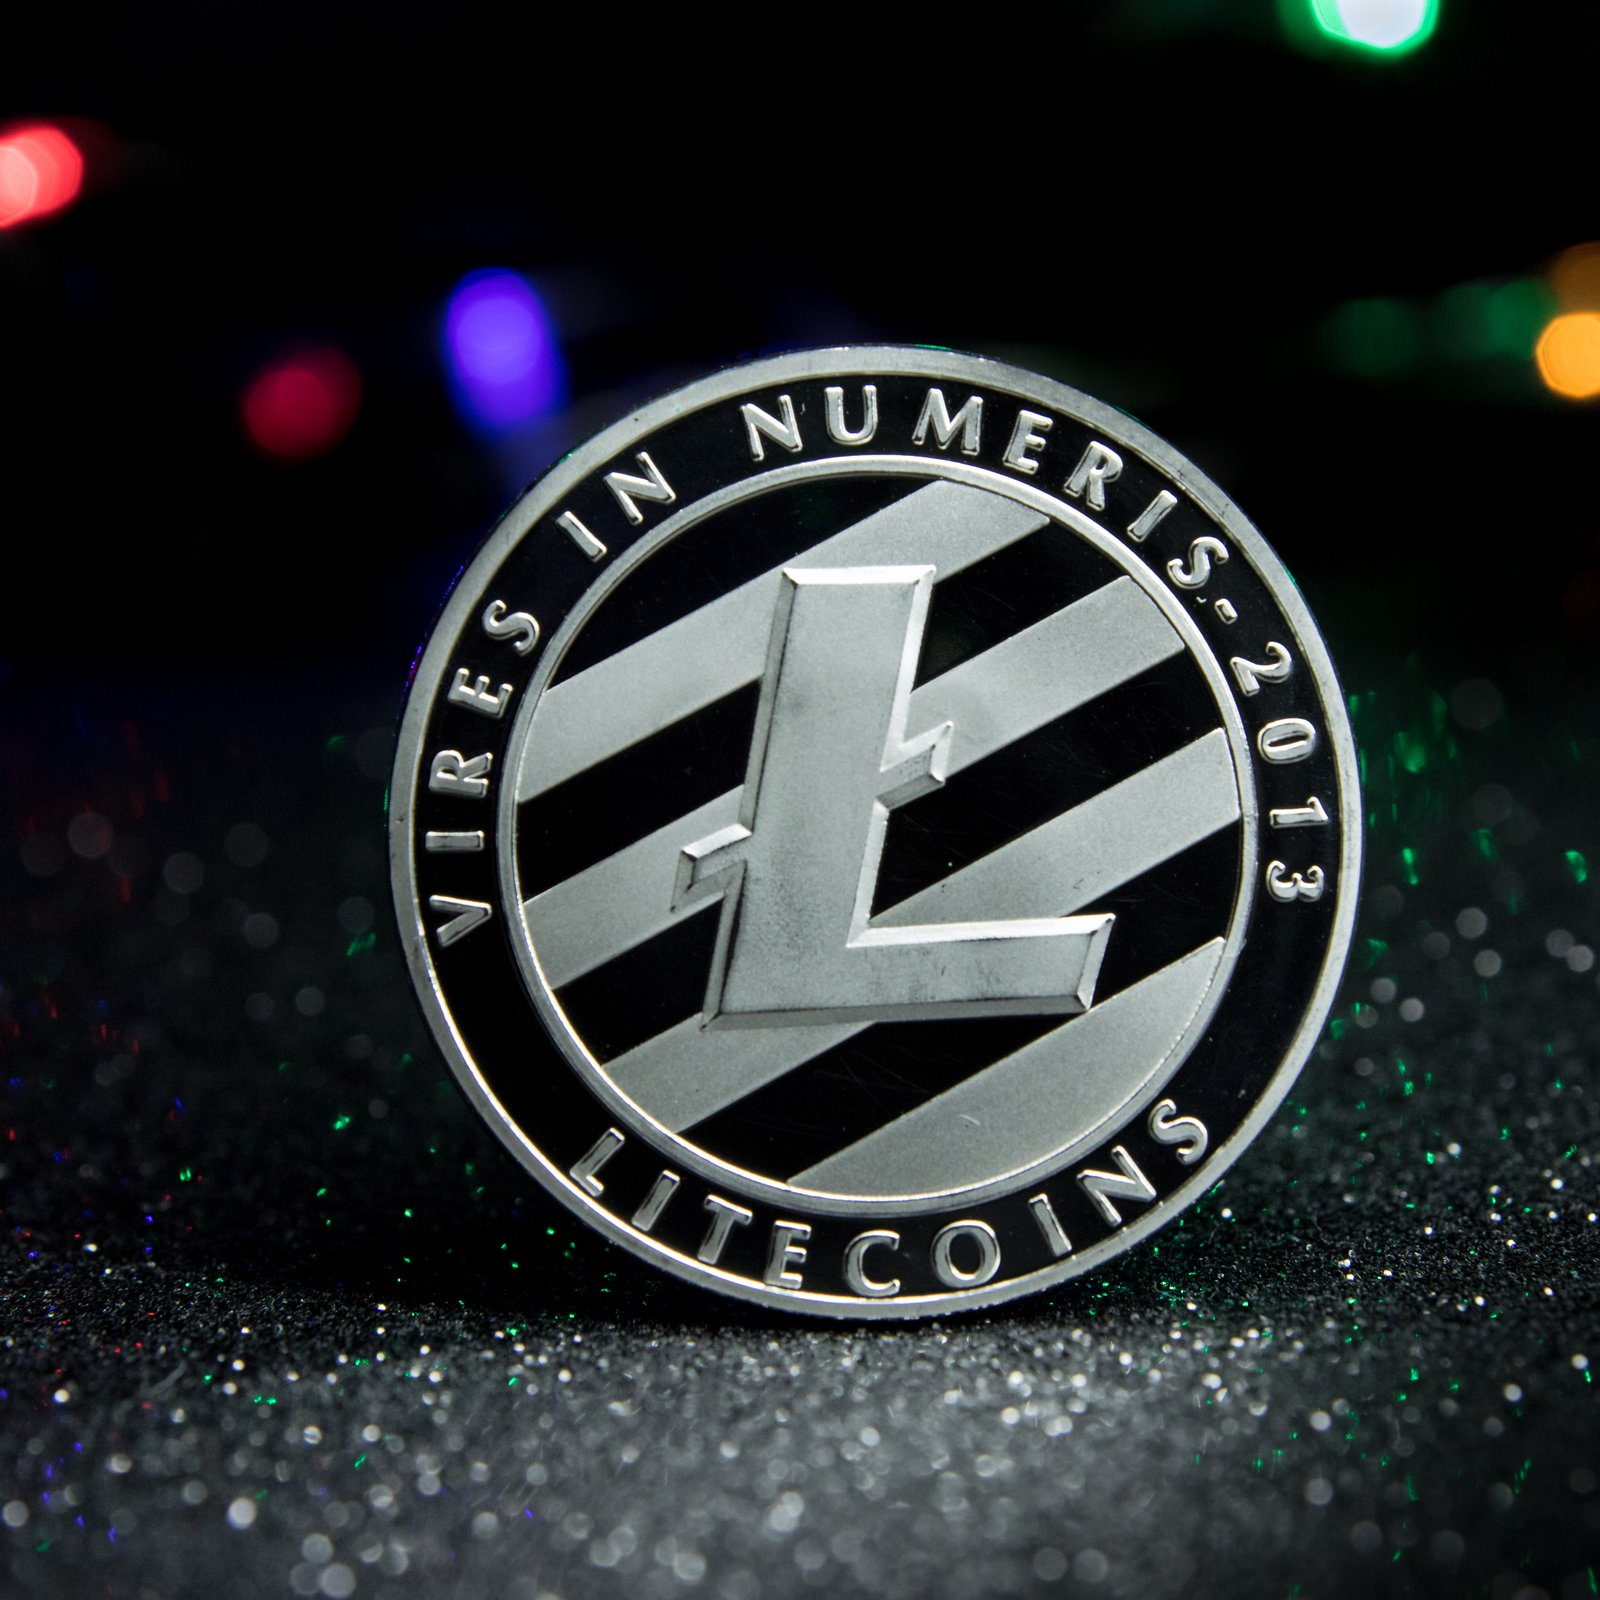 Litecoin Creator Charlie Lee Reveals He Sold All His Litecoin